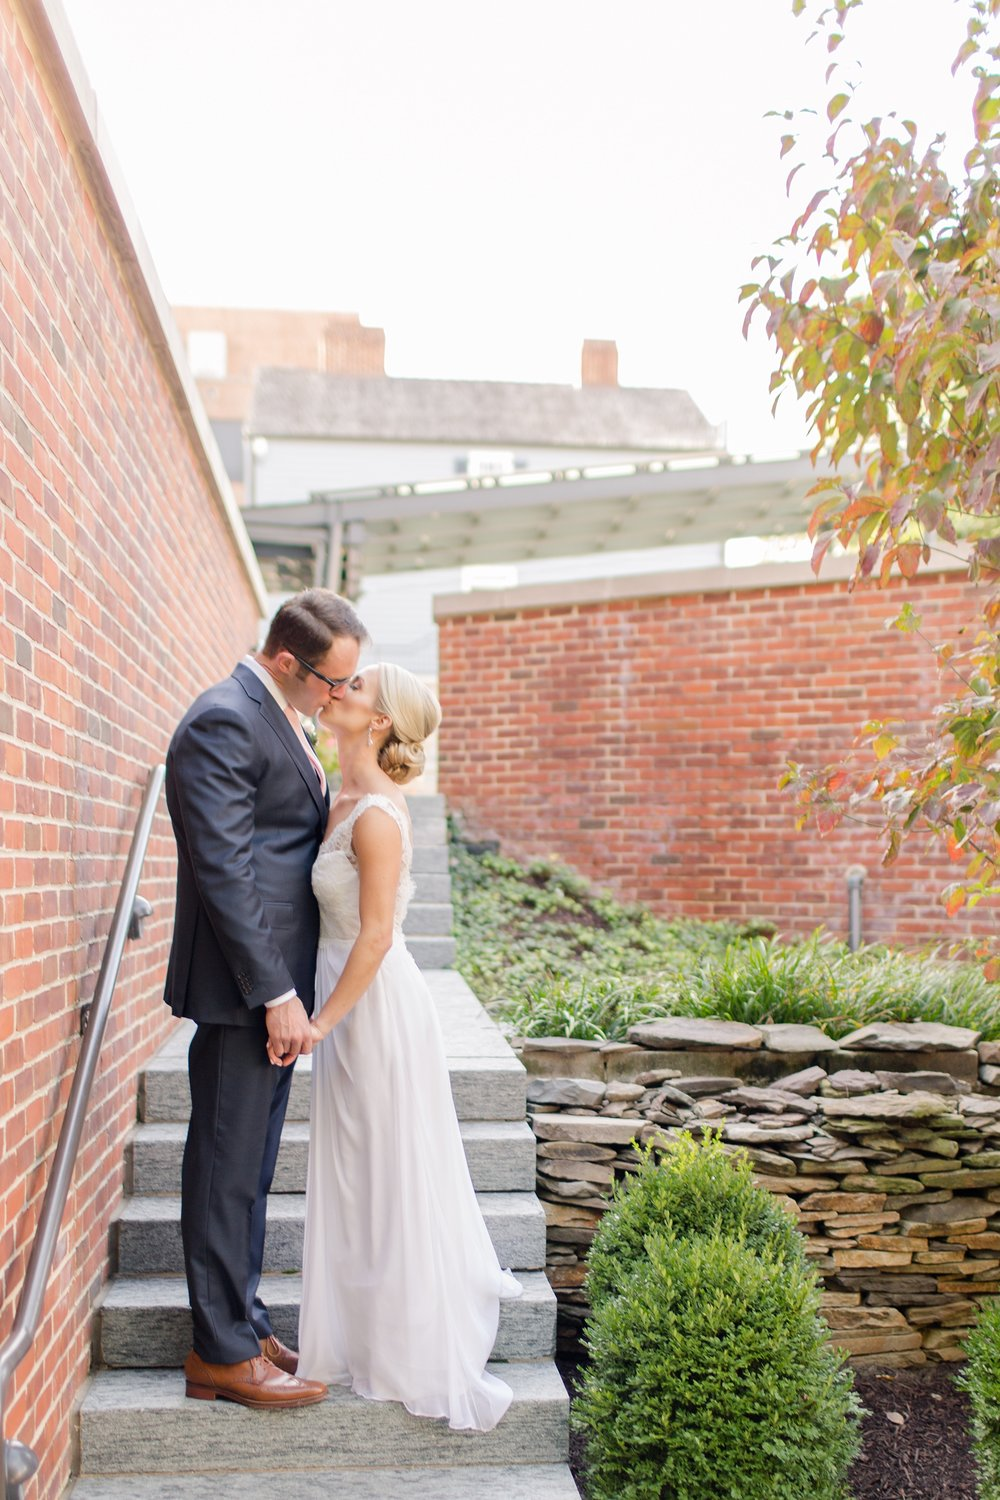 McAnelly 3. Bride & Groom Portraits-310_anna grace photography georgetown virginia wedding photographer ritz carlton wedding photo.jpg